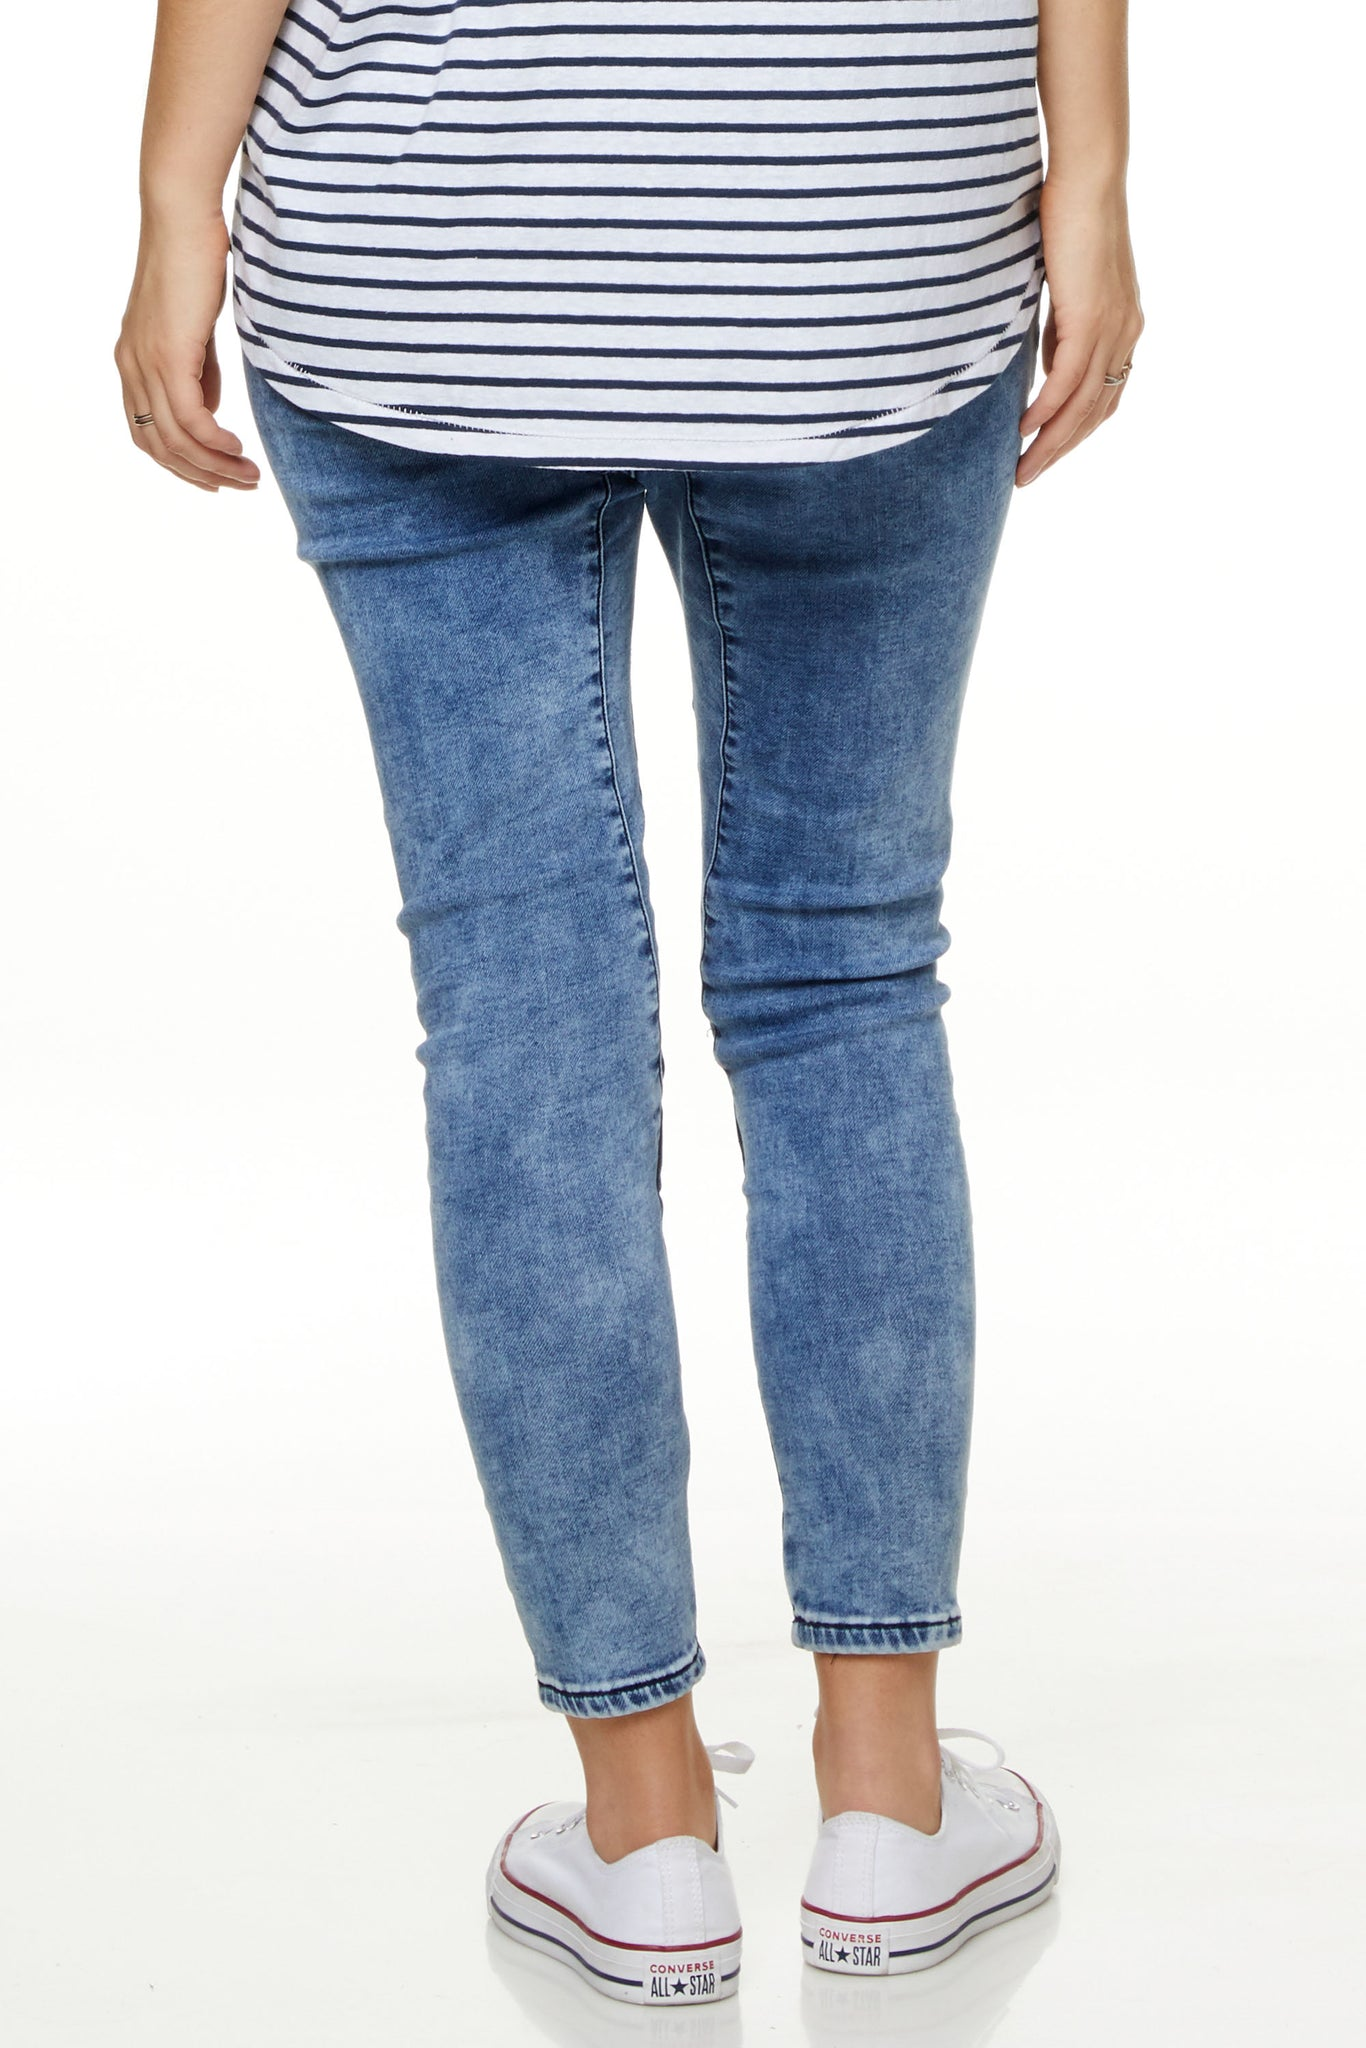 Maternity Jeans Joggers Image 3